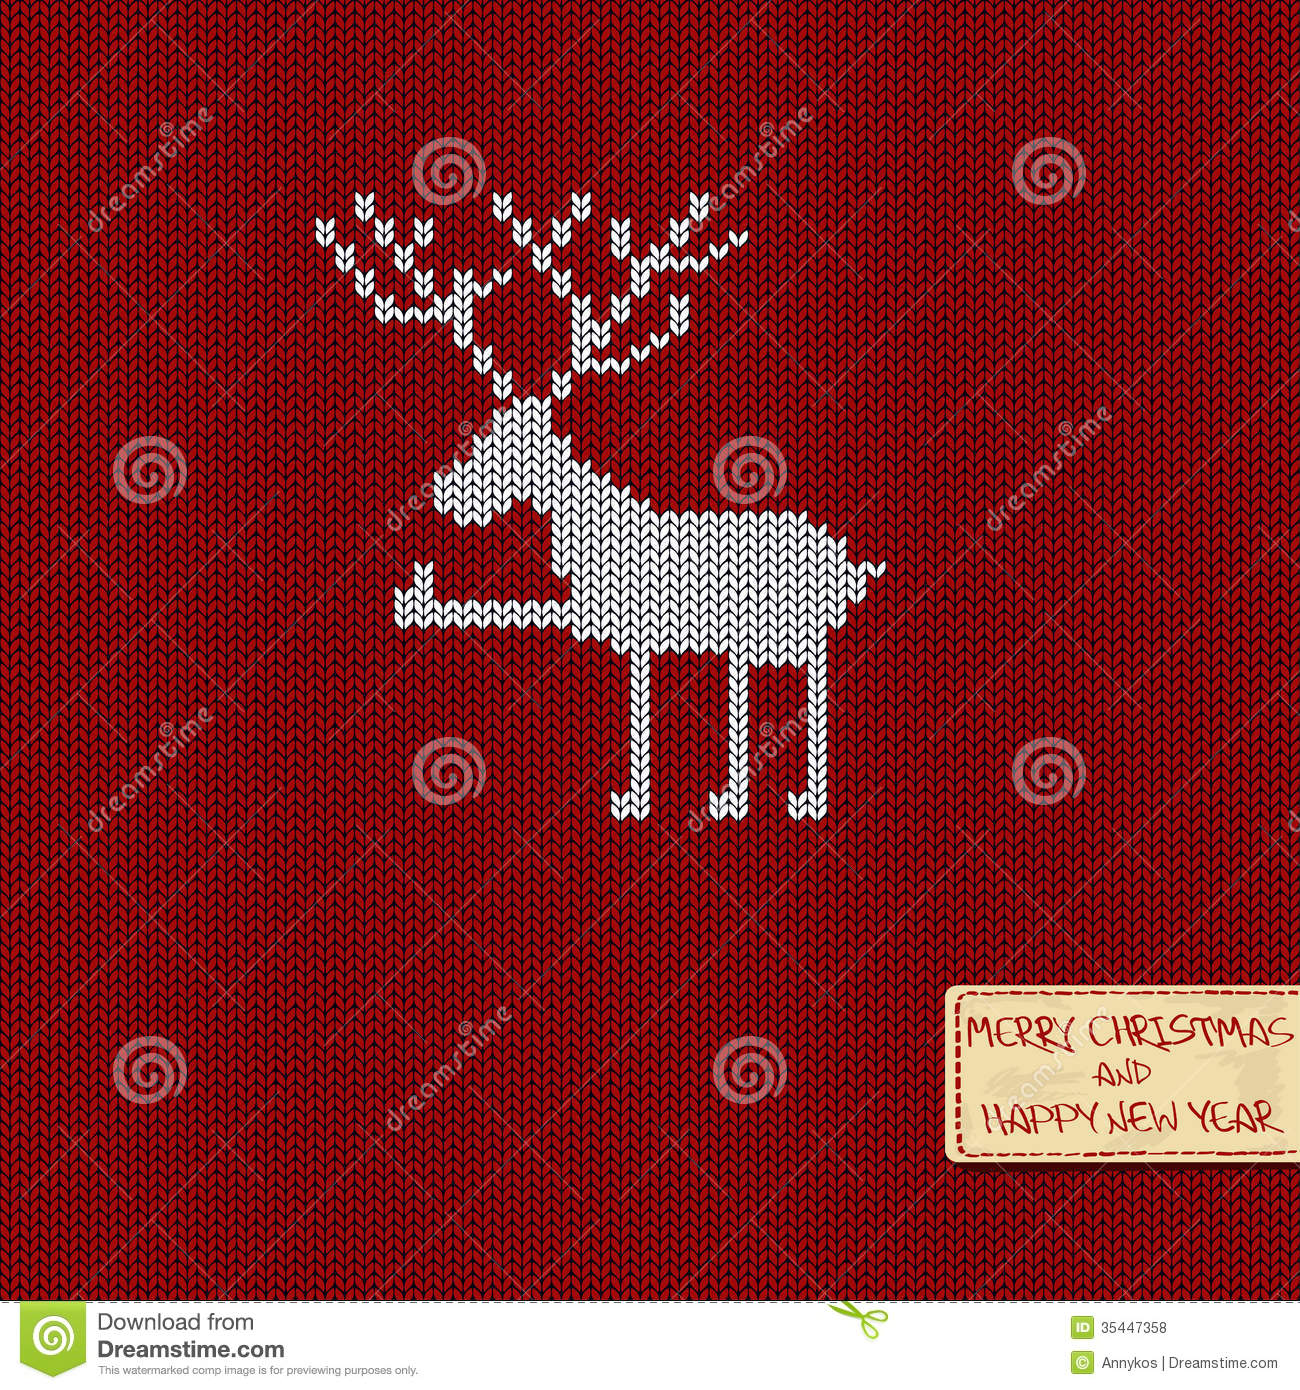 Funny Knitting Patterns : Christmas and new year knitted pattern card royalty free